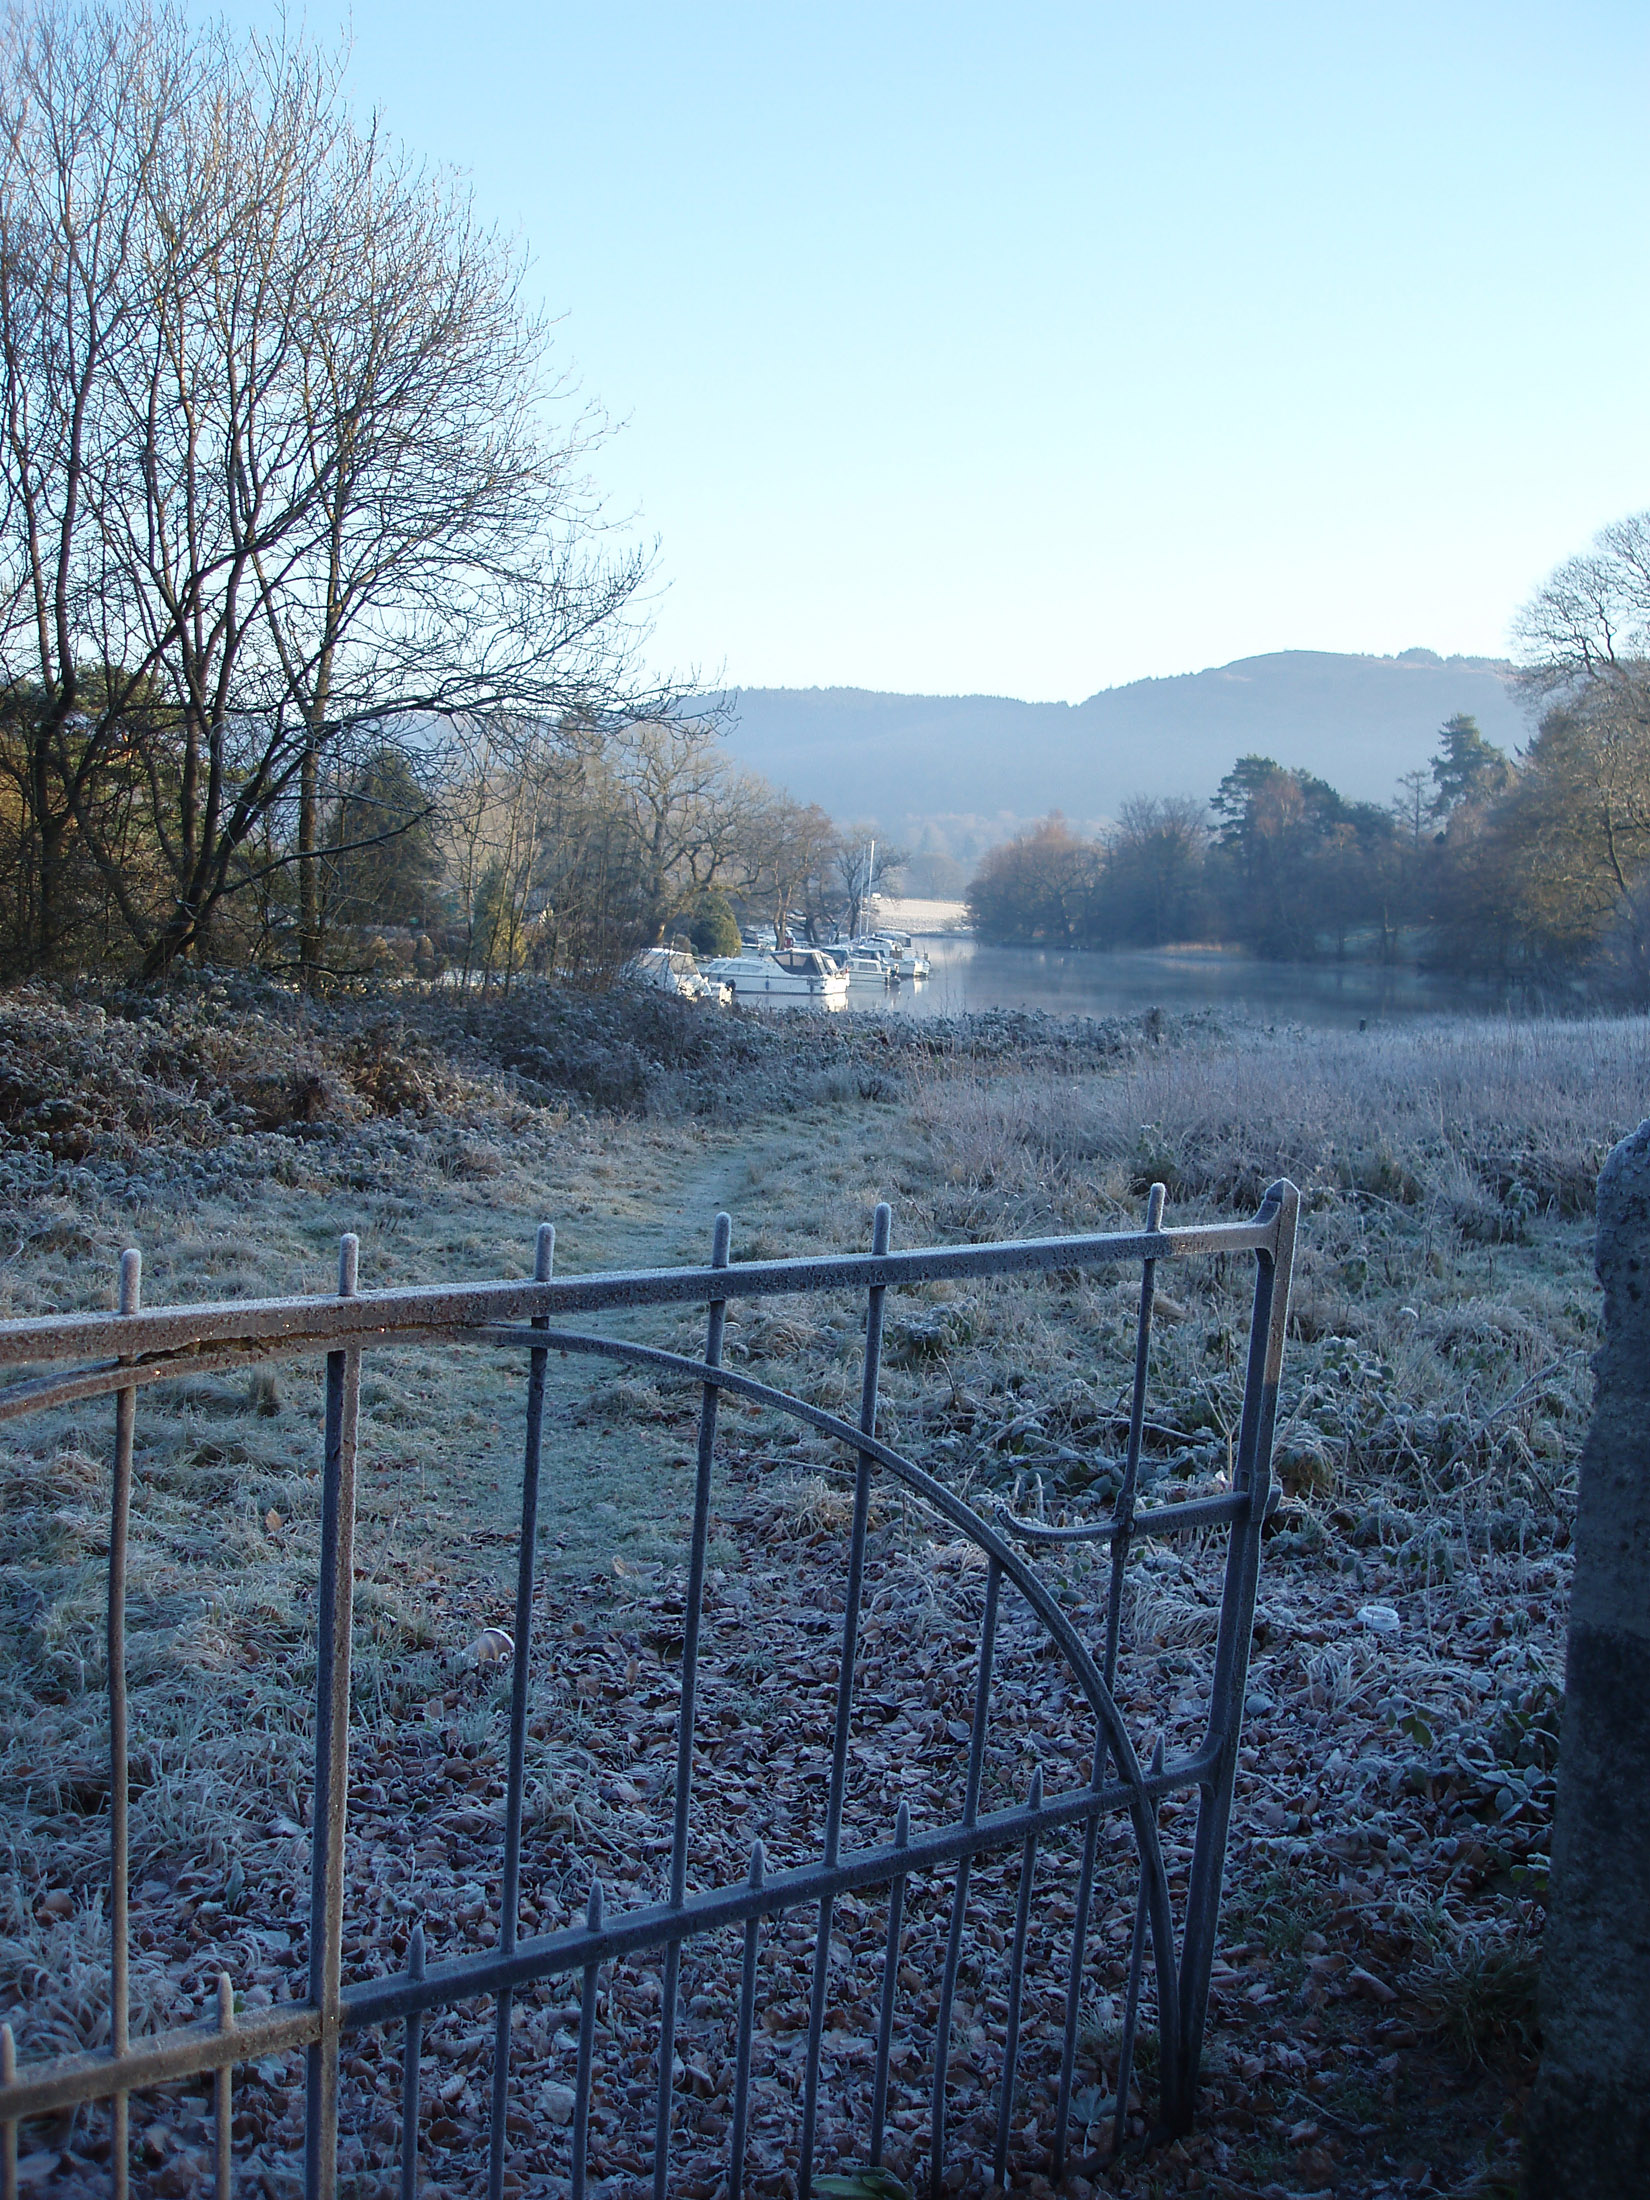 frosty winter morning at newby bridge looking out across the end of windermere